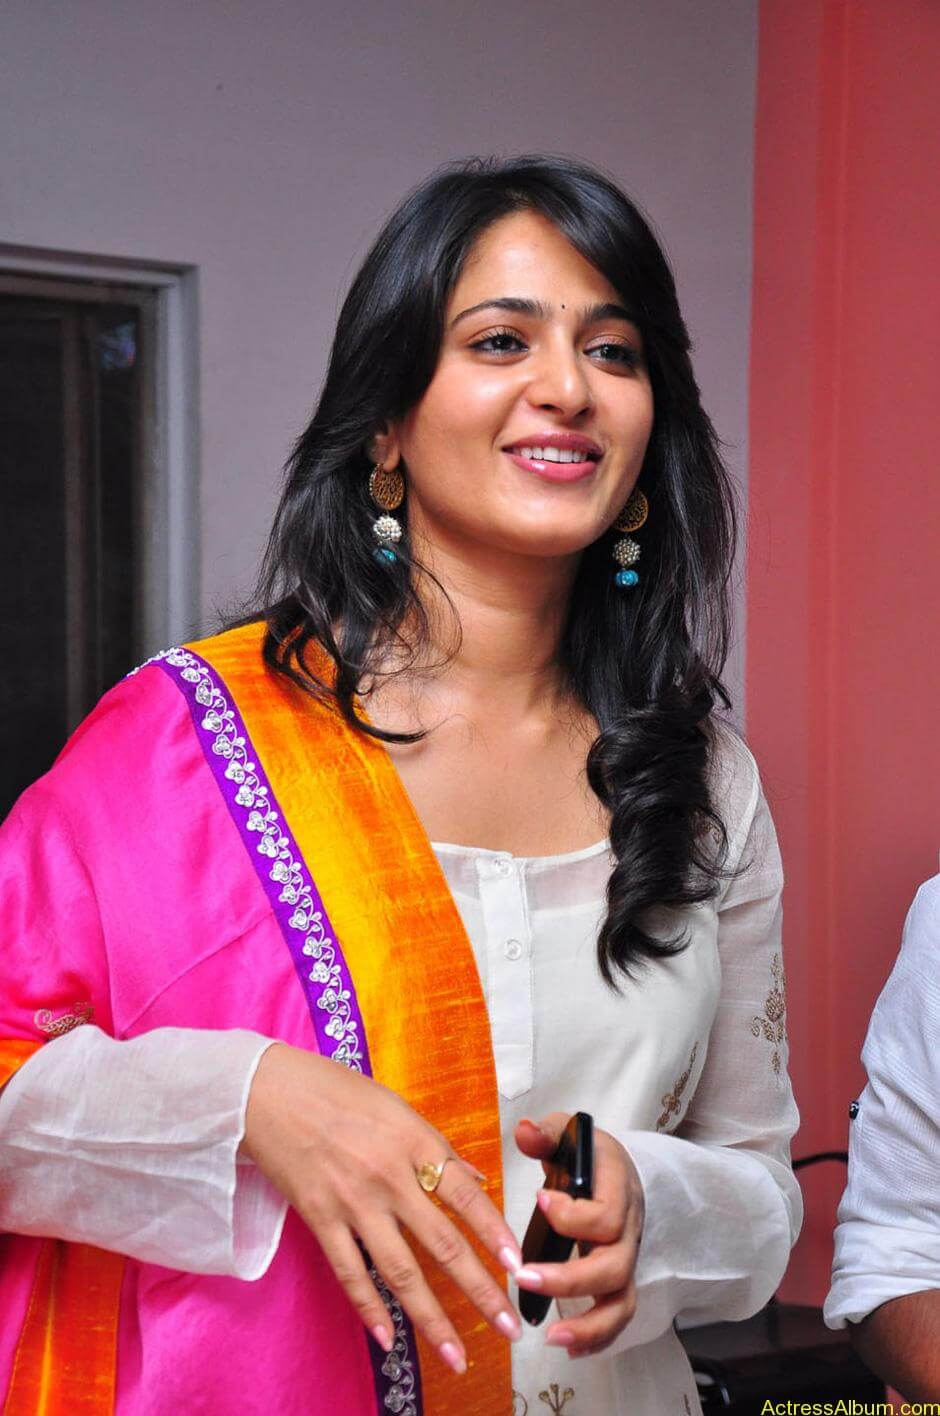 Anushka-Shetty-05-23-2011-Stills-015